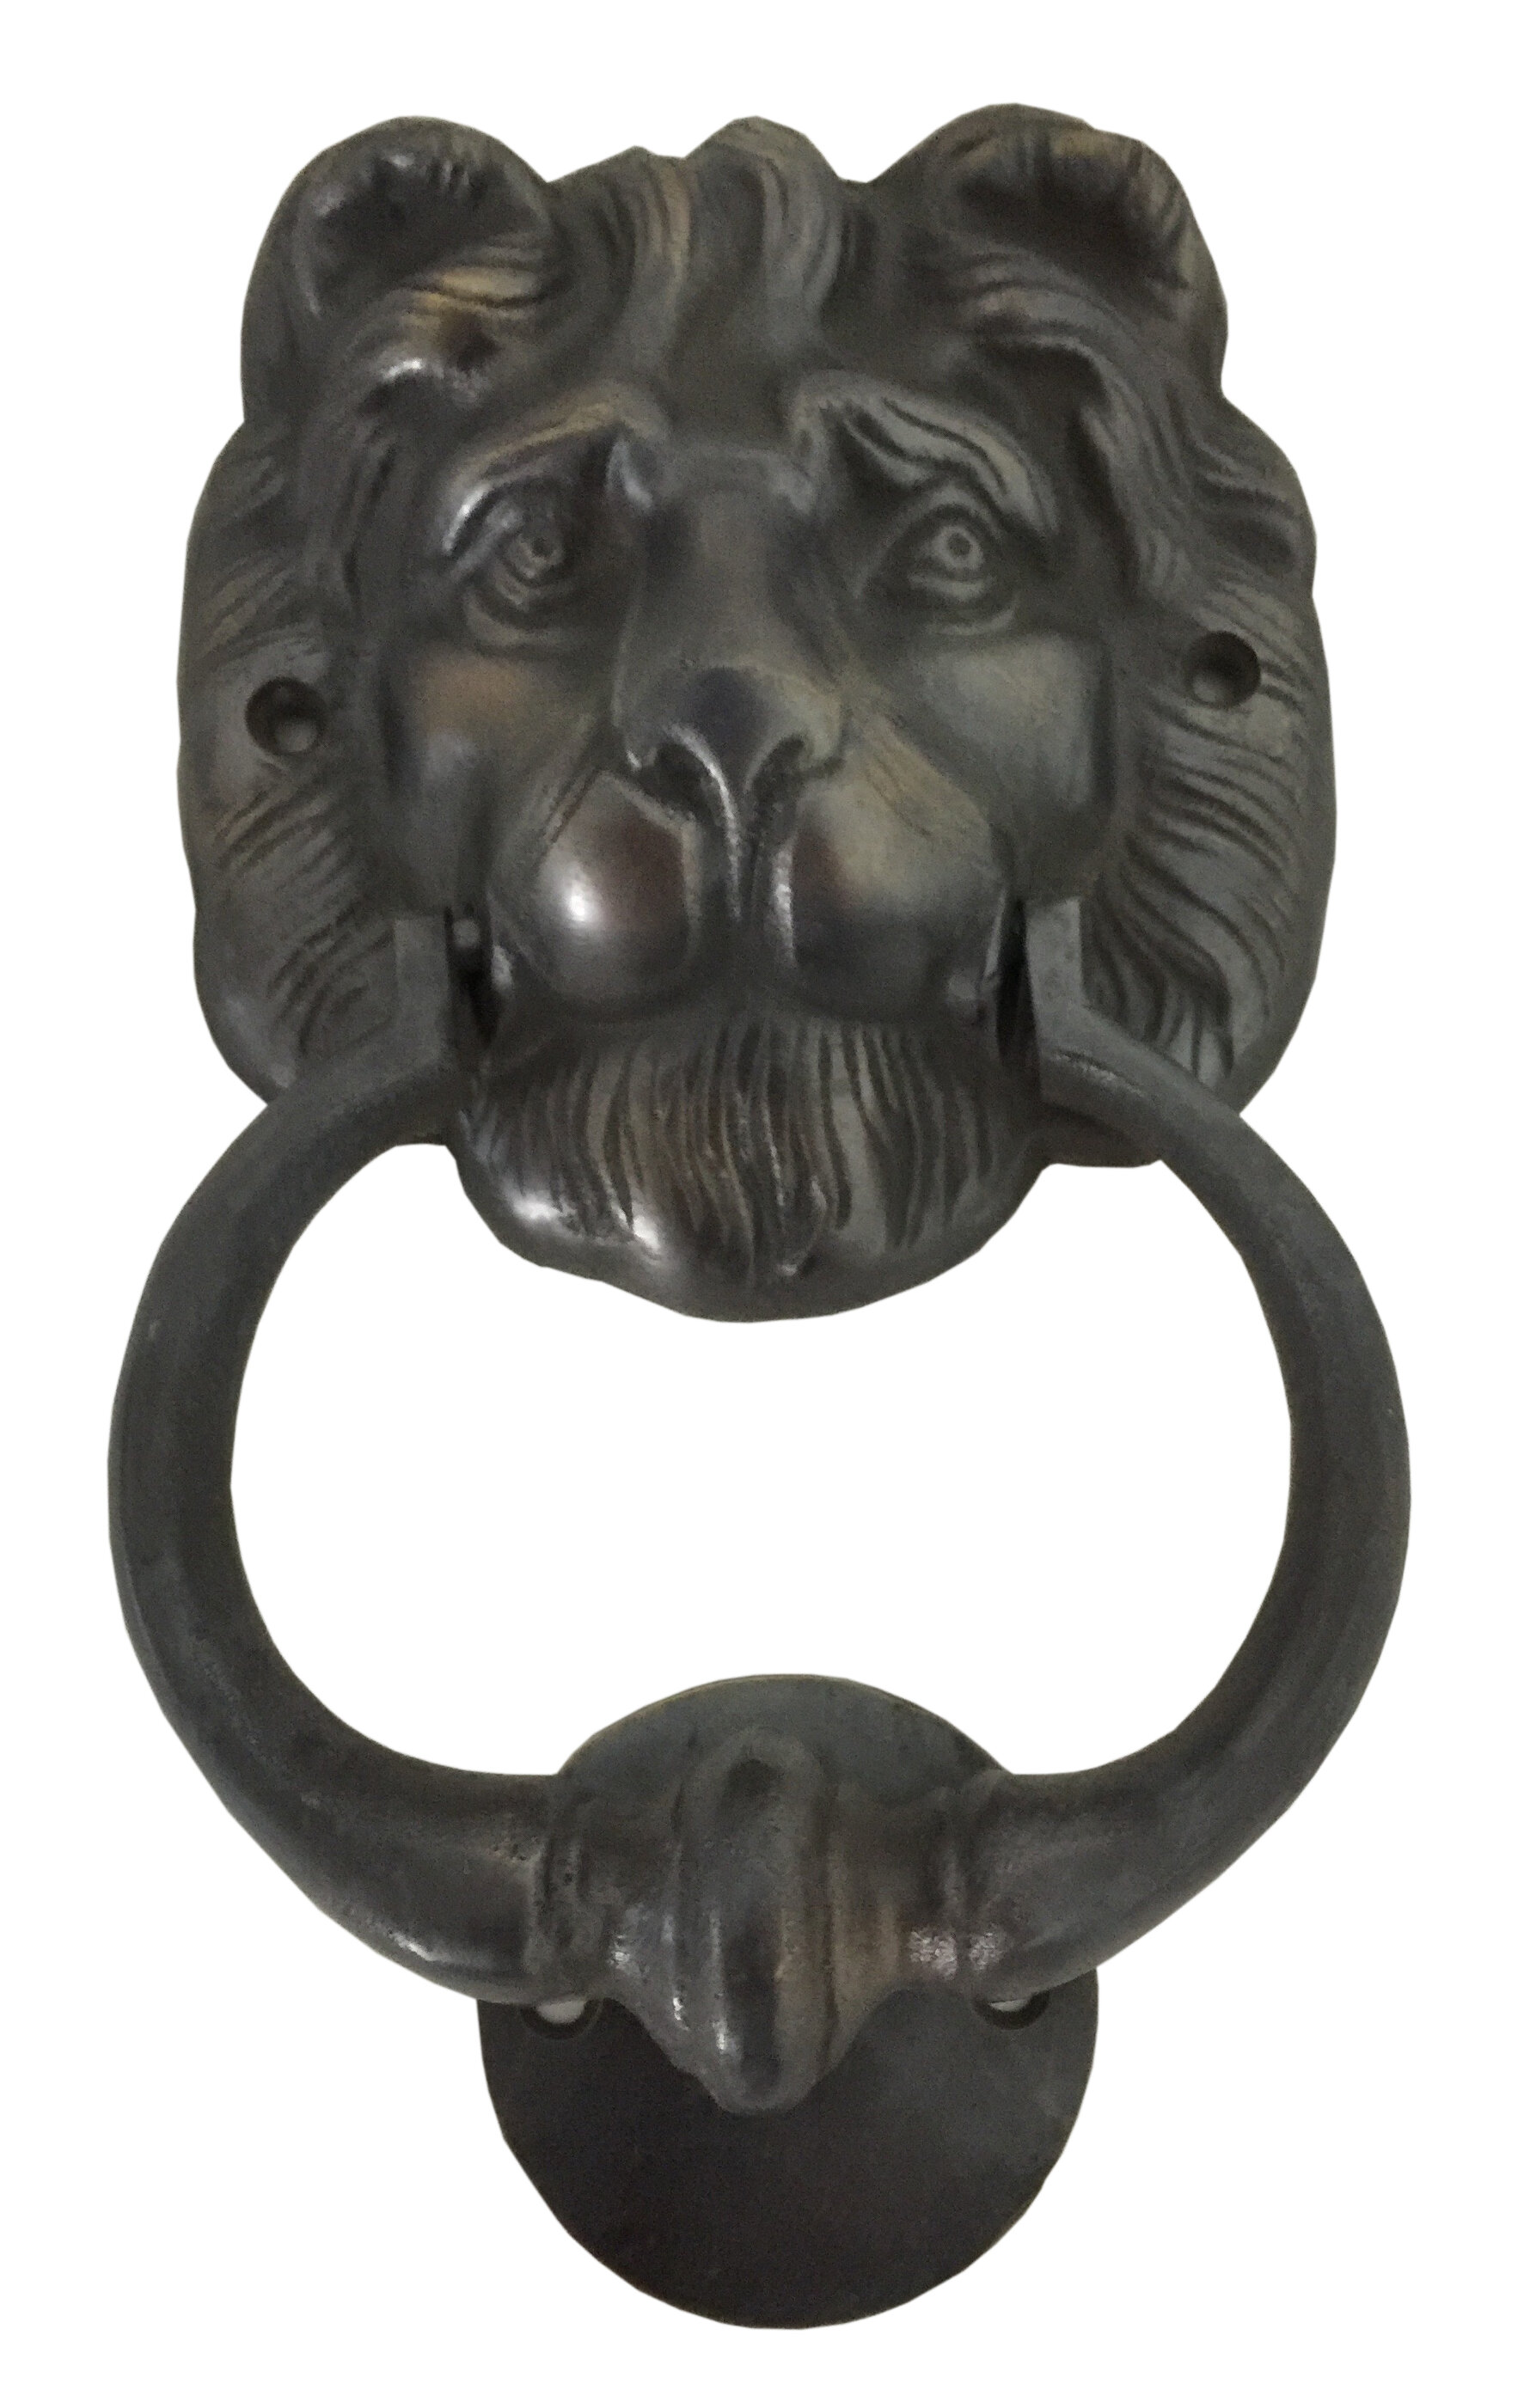 sc 1 st  Wayfair & D-Art Collection Lion Head Brass Door Knocker | Wayfair